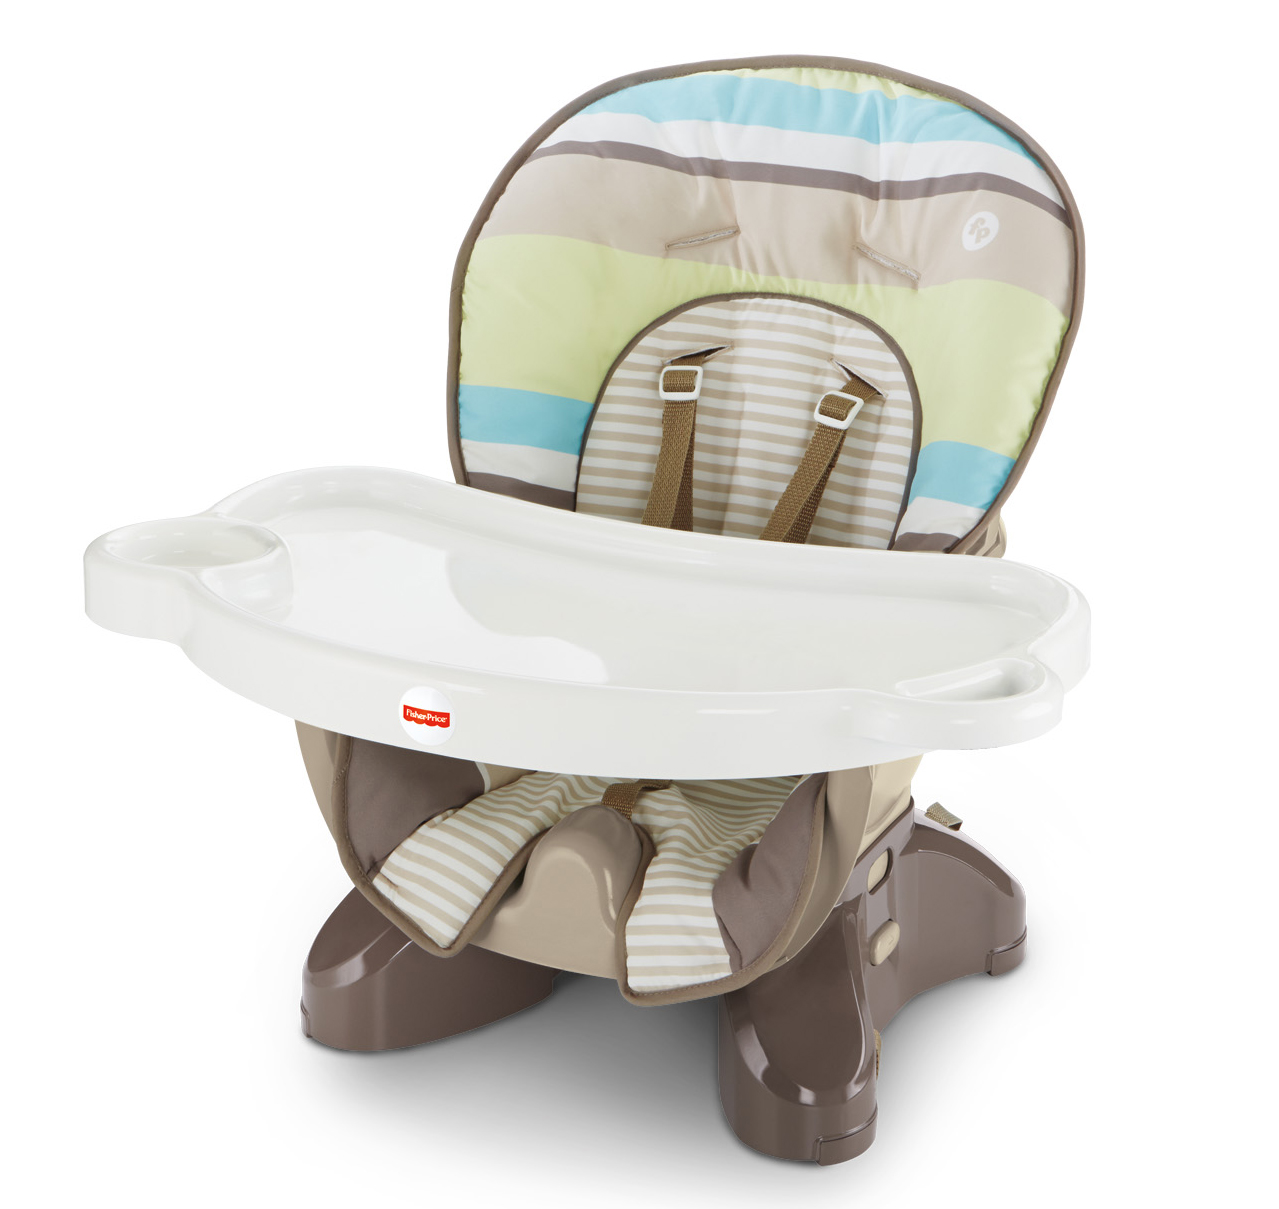 Fisher-Price SpaceSaver High Chair, Green Stripes